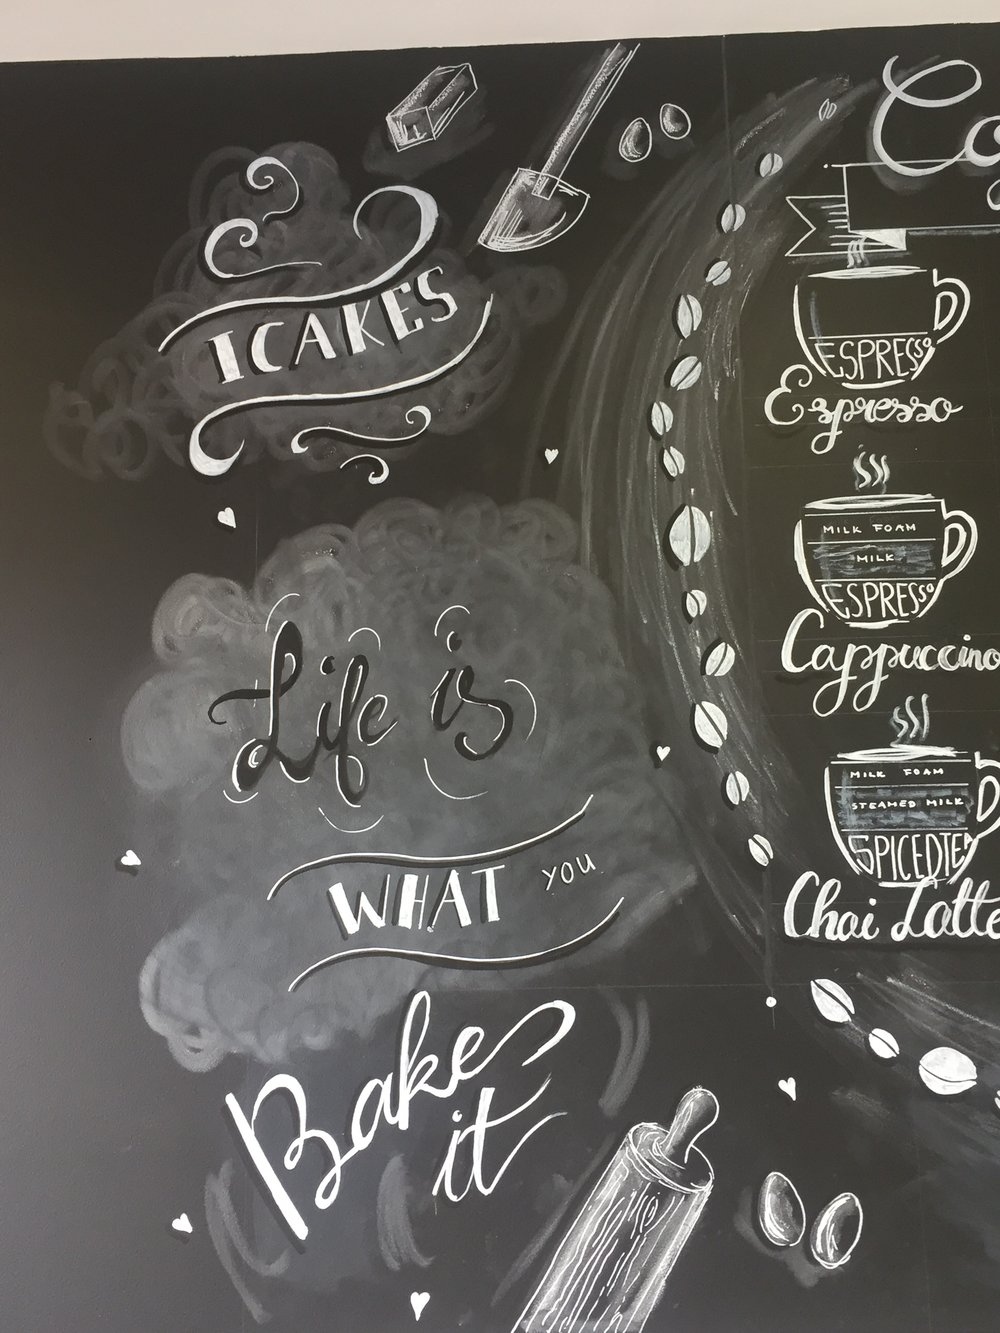 Chalkboard Wall Design For Icakes Ilford Gabriella Horvath